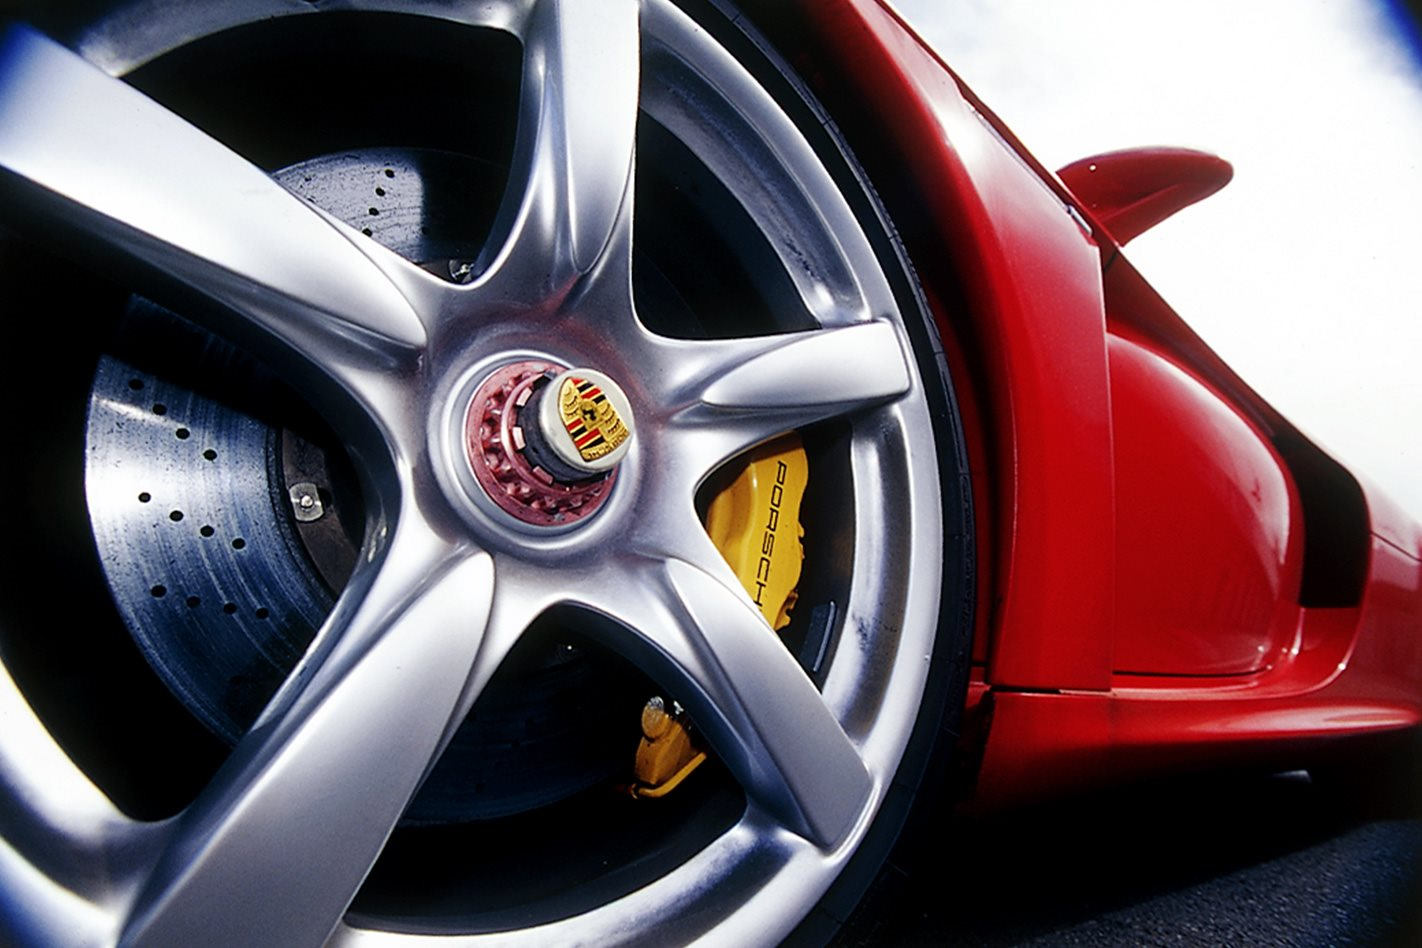 2004 Porsche Carrera GT wheel